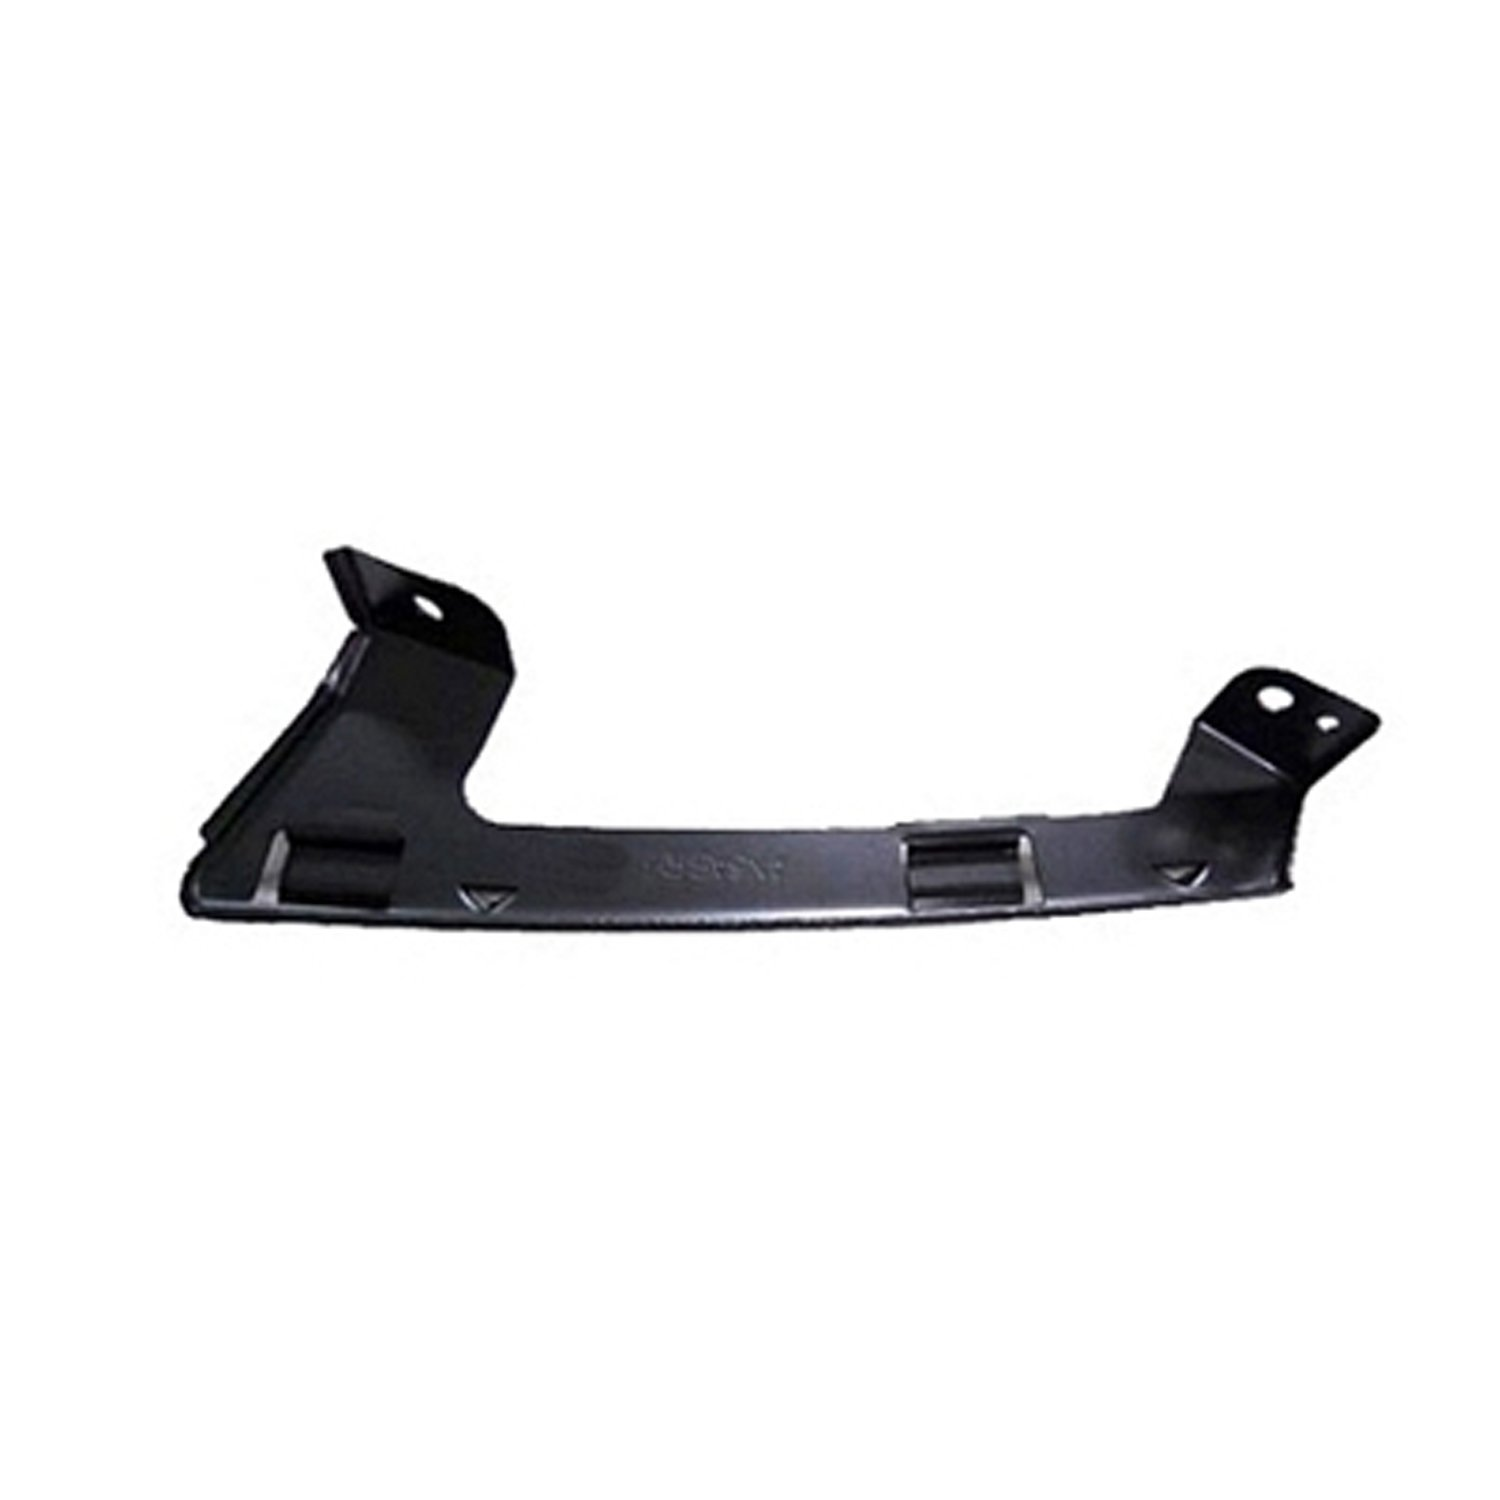 Genuine Hyundai Parts 86551-26900 Front Bumper Cover Support